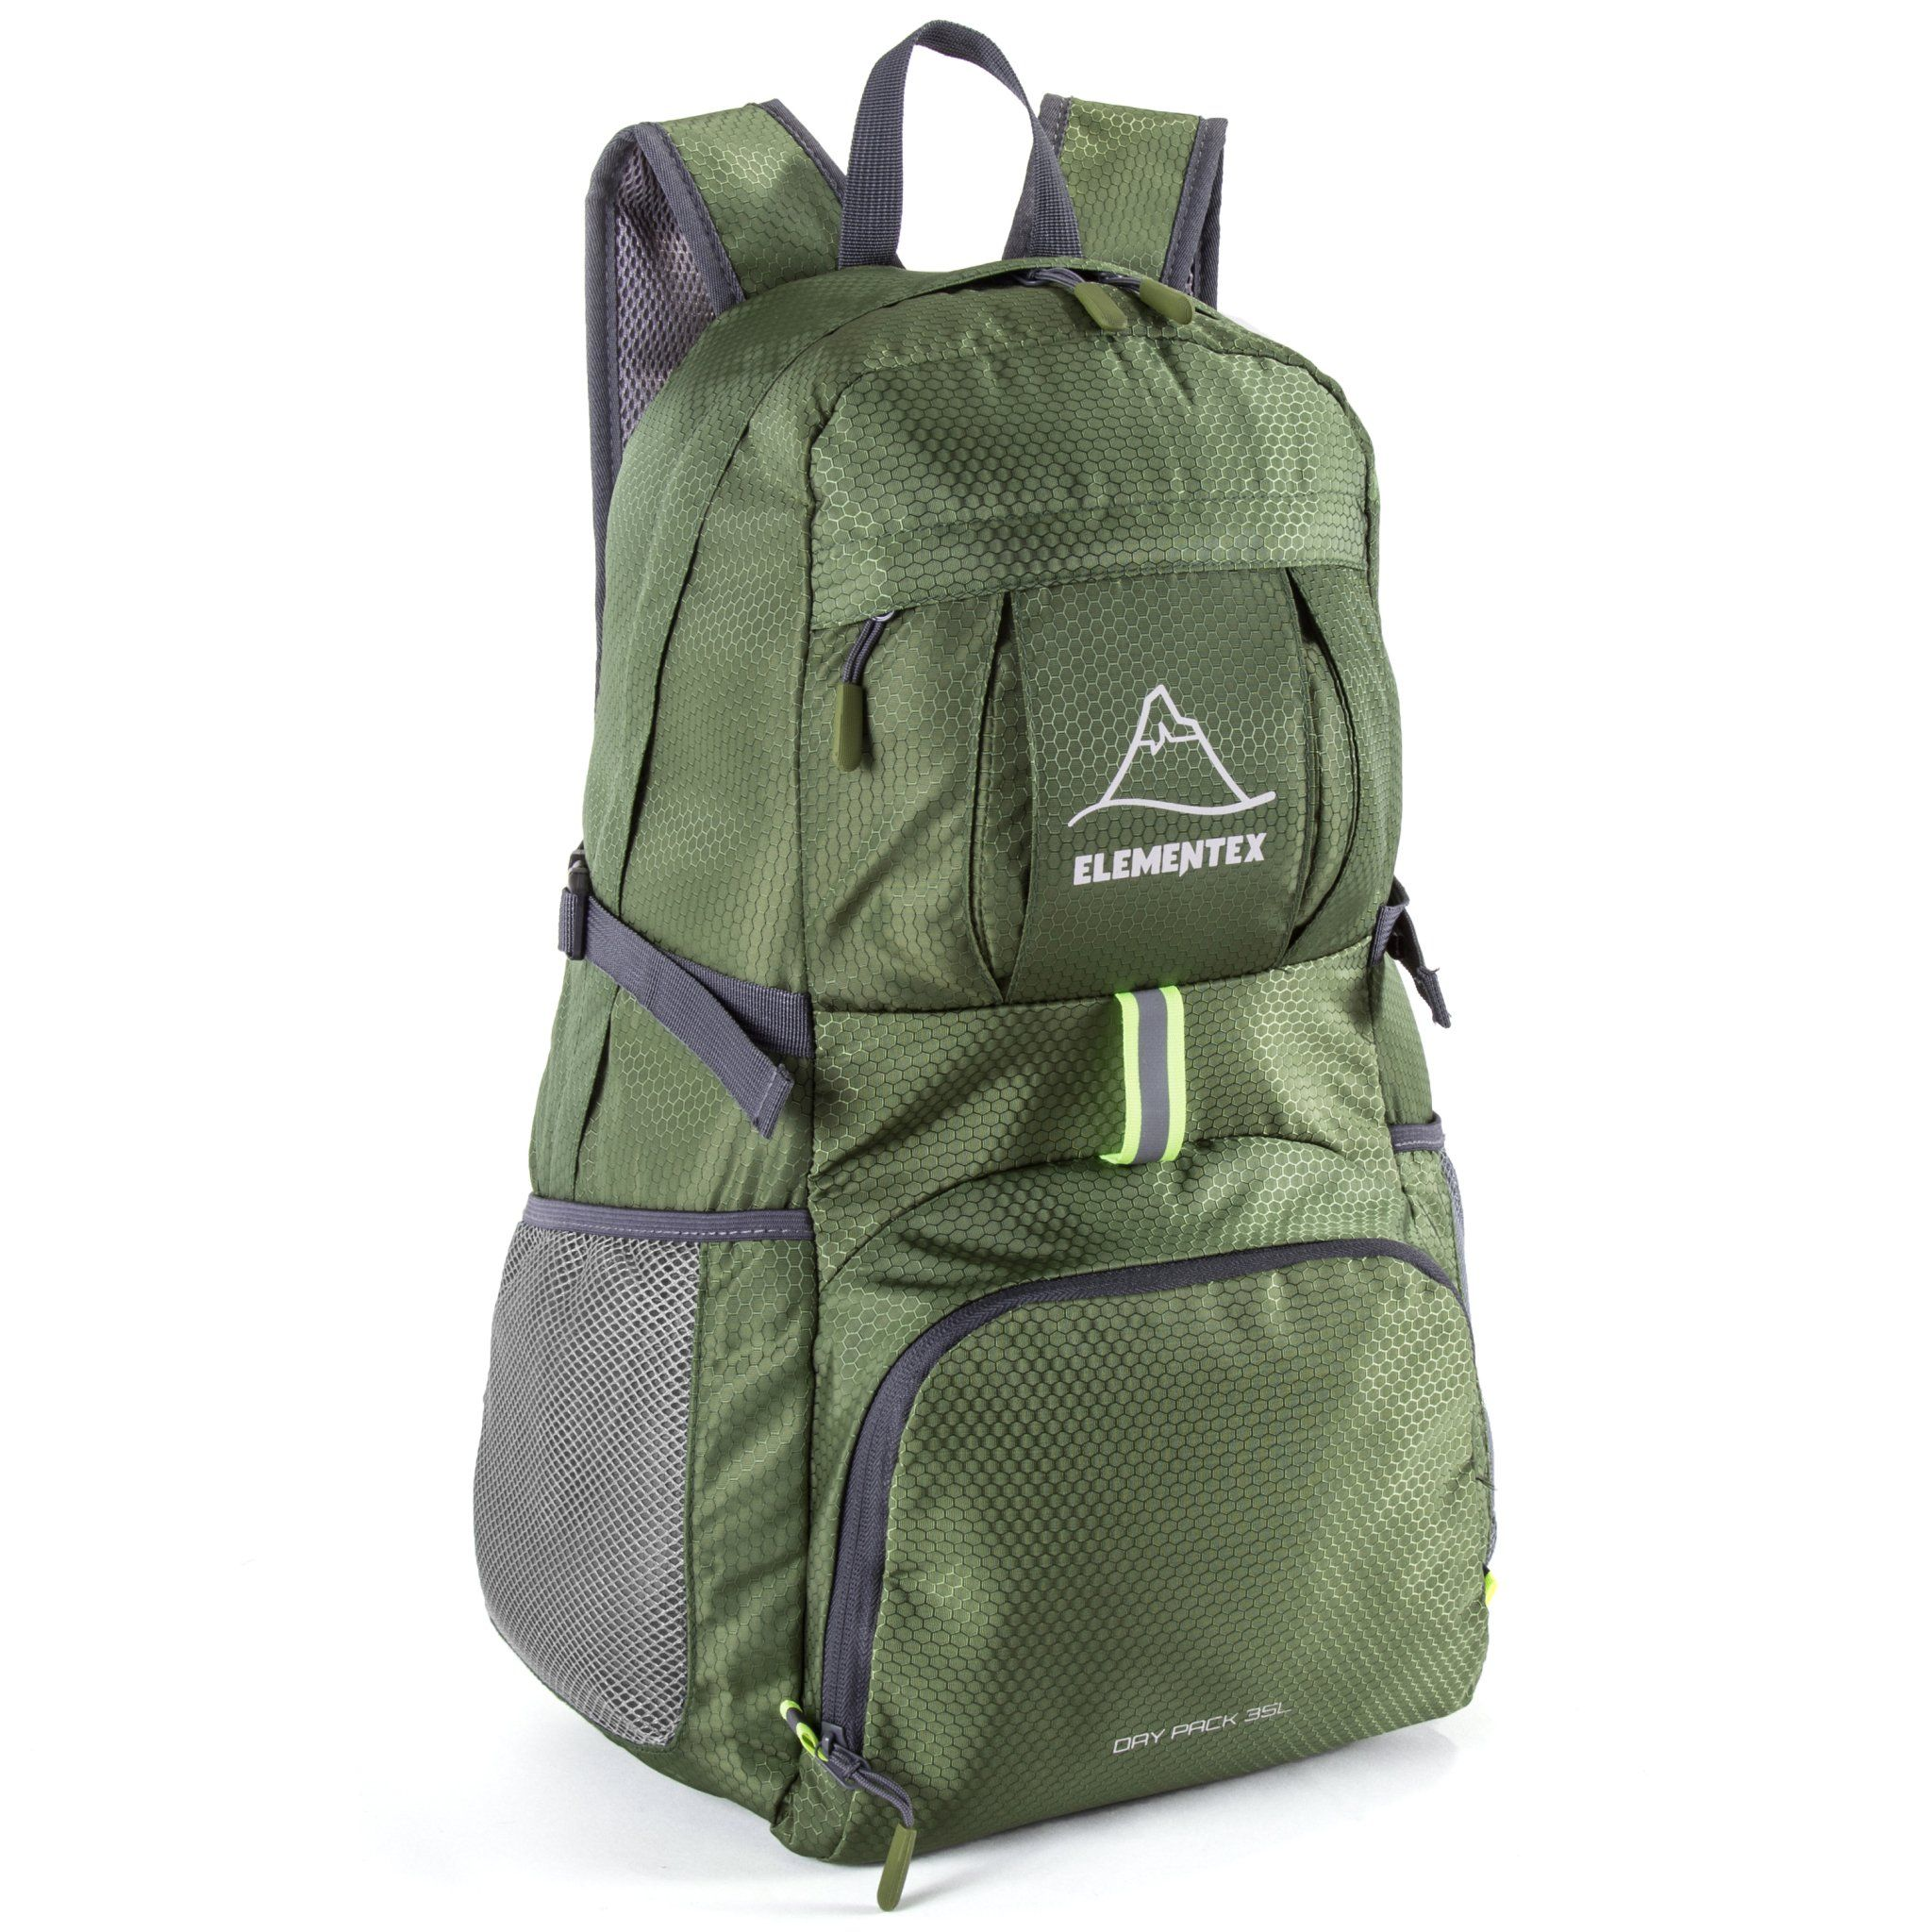 a46c697e8b ELEMENTEX Foldable Hiking Backpack - Green. Package Includes  1 - Foldable  Lightweight Travel Backpack